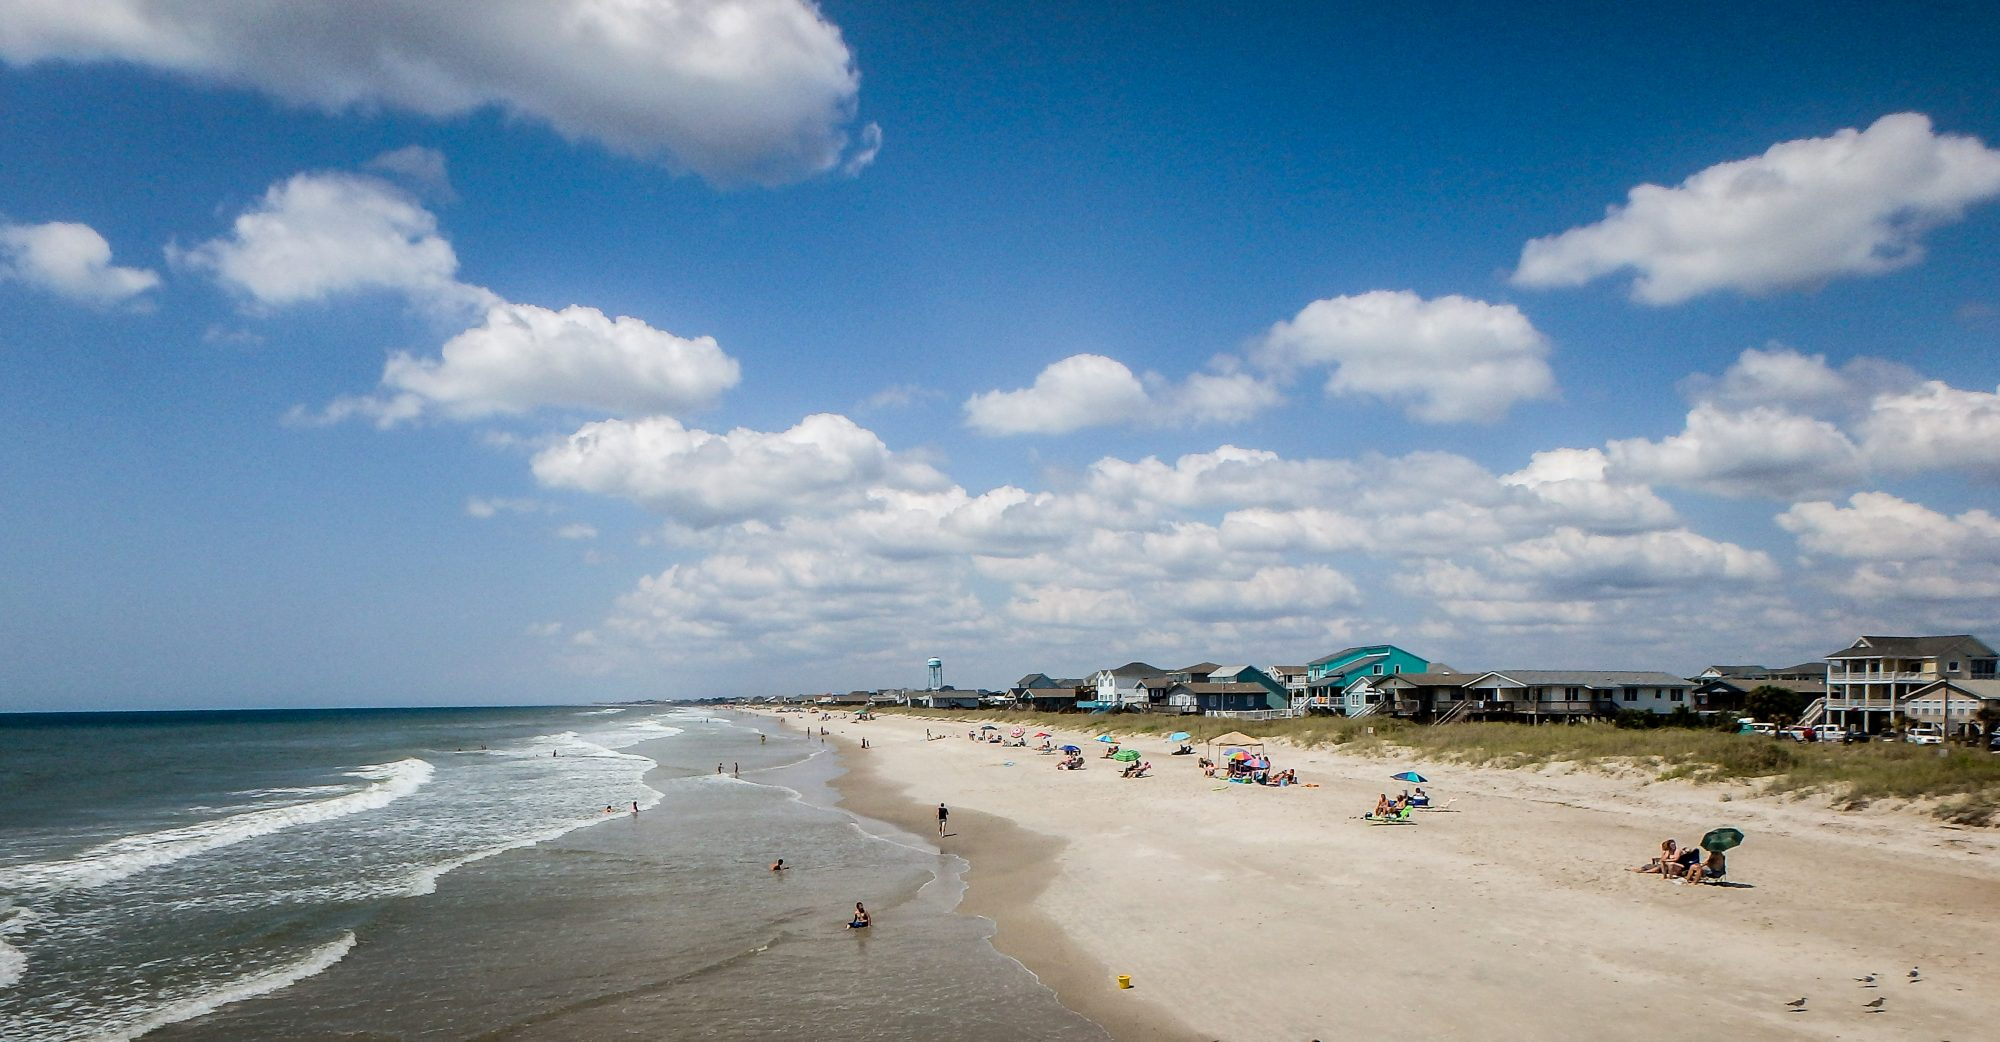 Named one of the best places to retire in North Carolina, this island near Wilmington has 10 miles of south-facing beaches, not to mention two fishing piers and nostalgic pleasures that include ice cream and miniature golf. Oak Island is also a dog lover's dream: Four legged friends are allowed on the beaches year-round, and they can be off the leash from October 16-March 15 from 6am to 8pm.